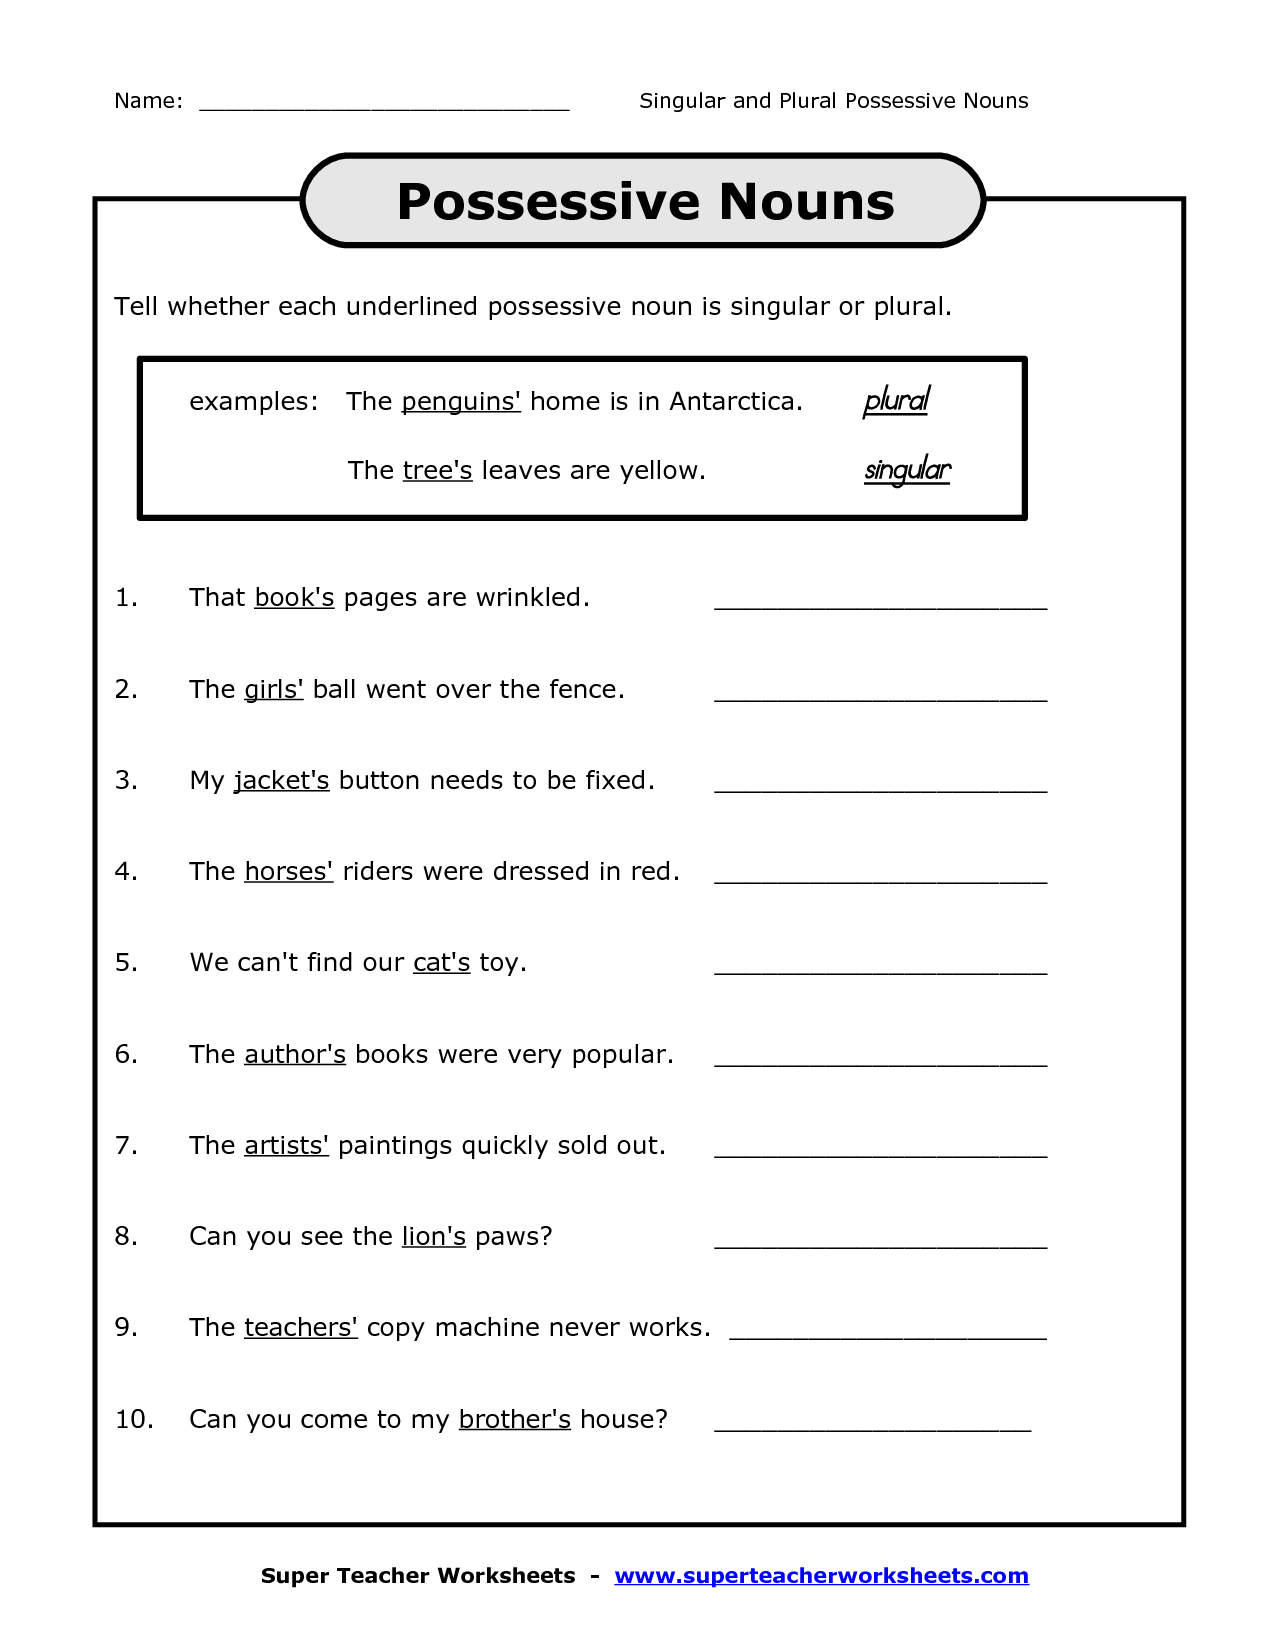 12 Best Images Of Pronouns Grammar Worksheets For 2nd